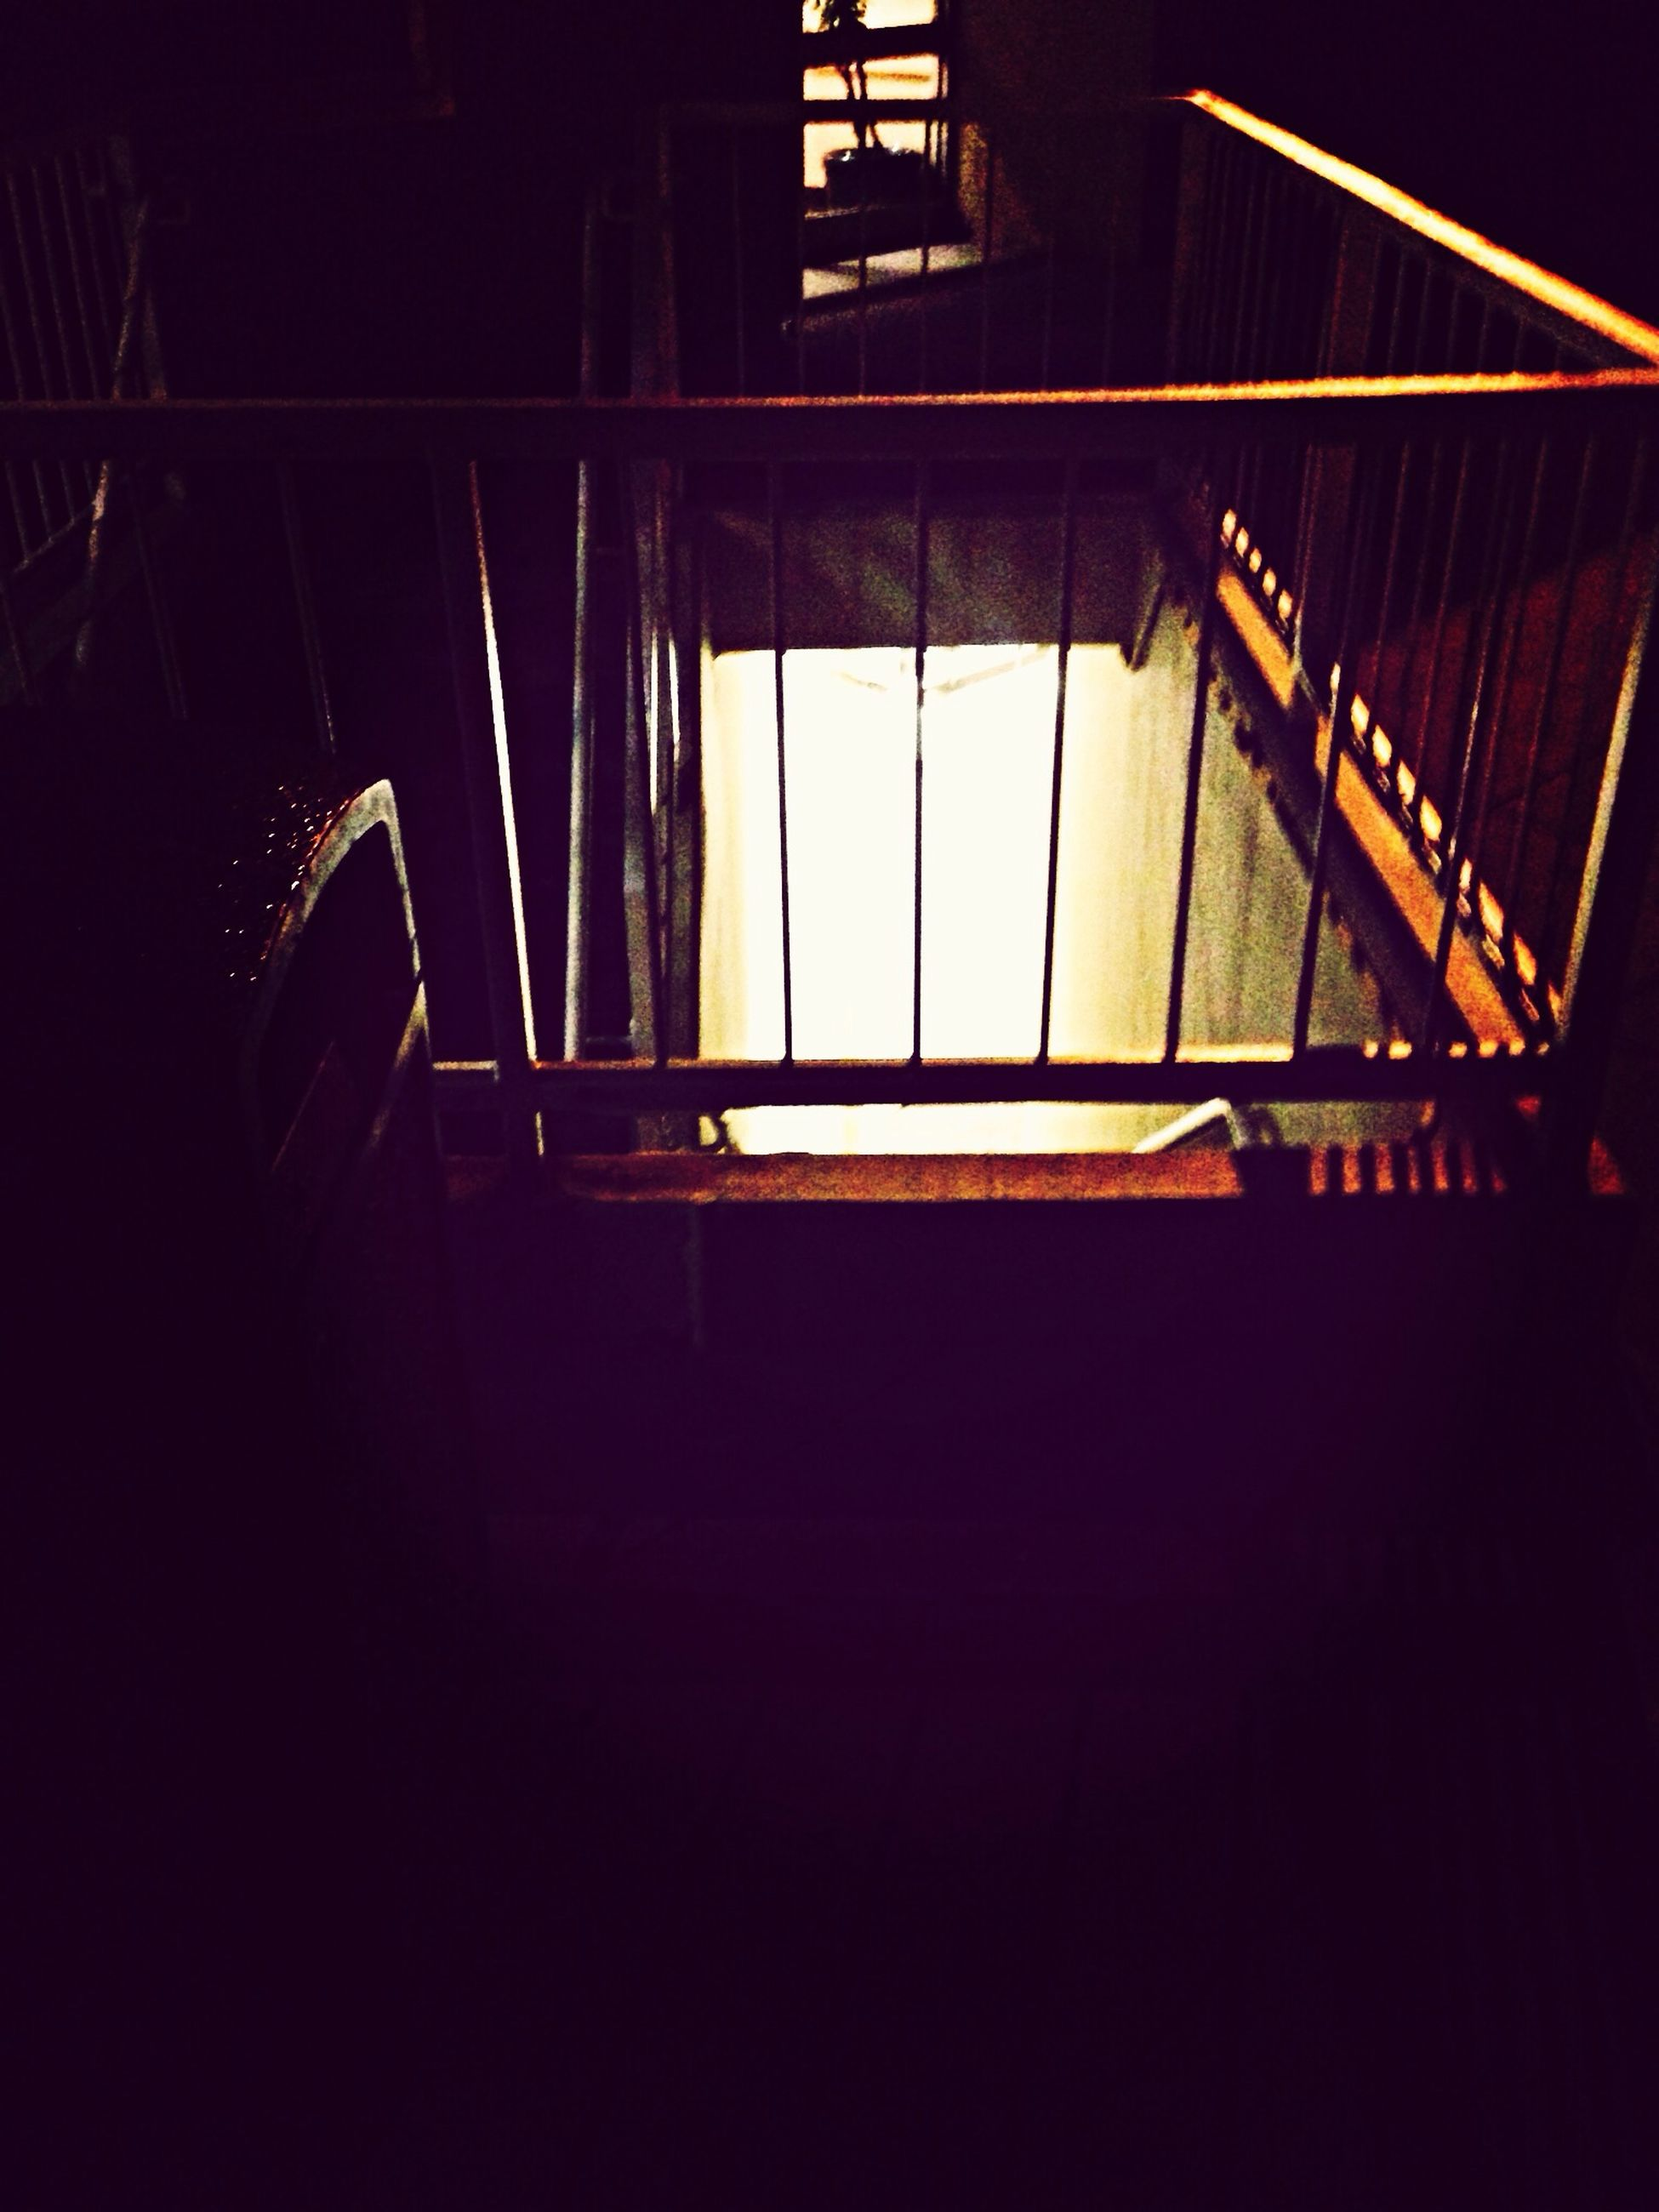 indoors, railing, staircase, steps, steps and staircases, built structure, architecture, low angle view, night, dark, sunlight, empty, absence, illuminated, shadow, metal, no people, high angle view, transportation, building